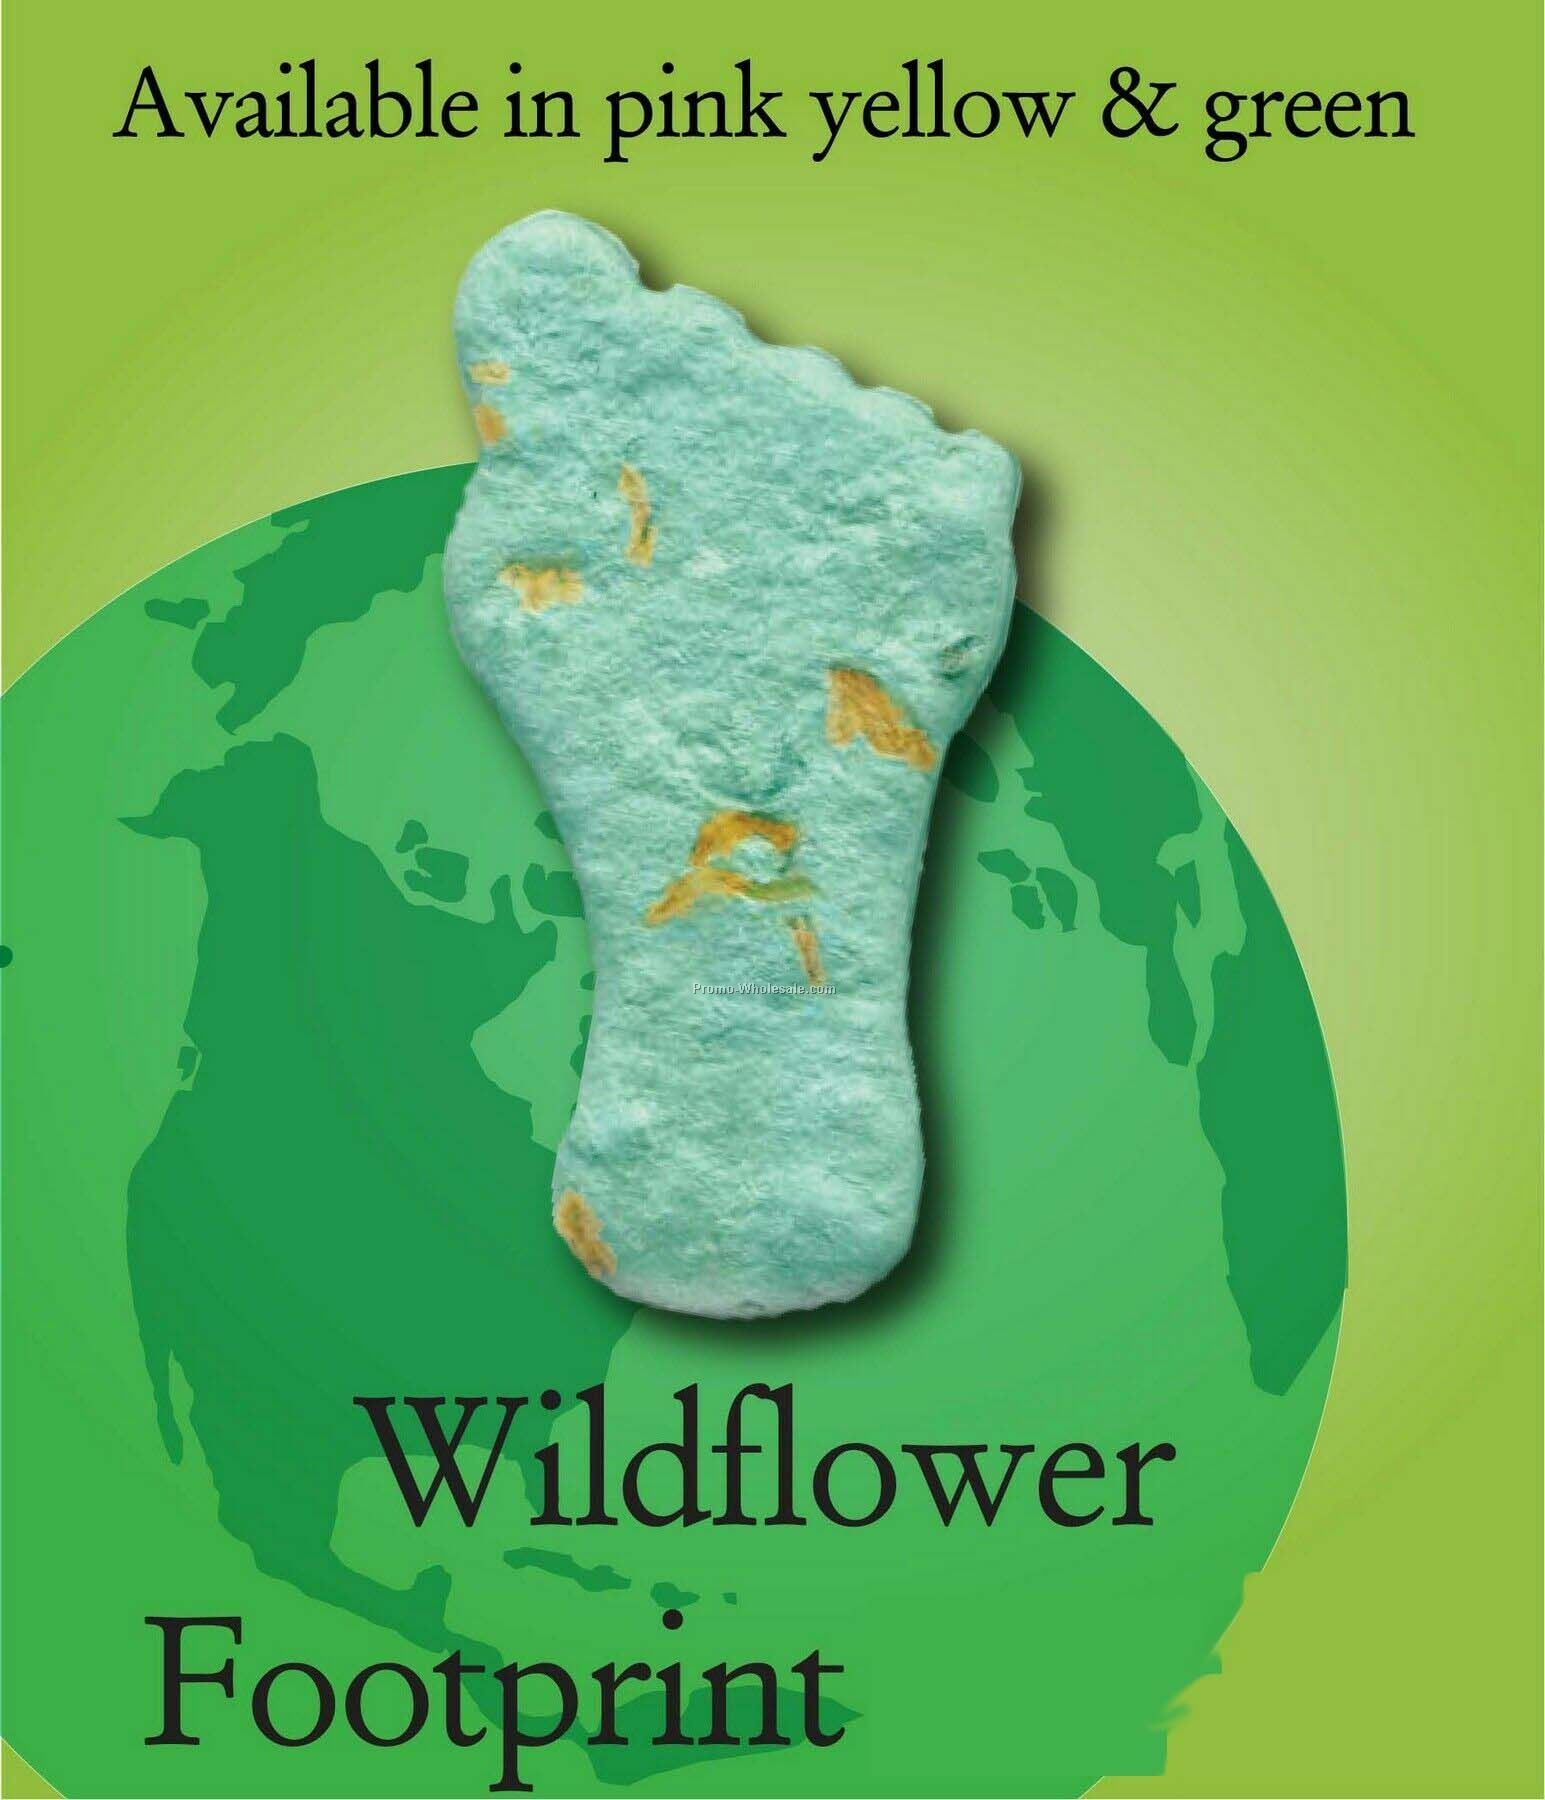 Wildflower Footprint Handmade Seed Plantable Mini